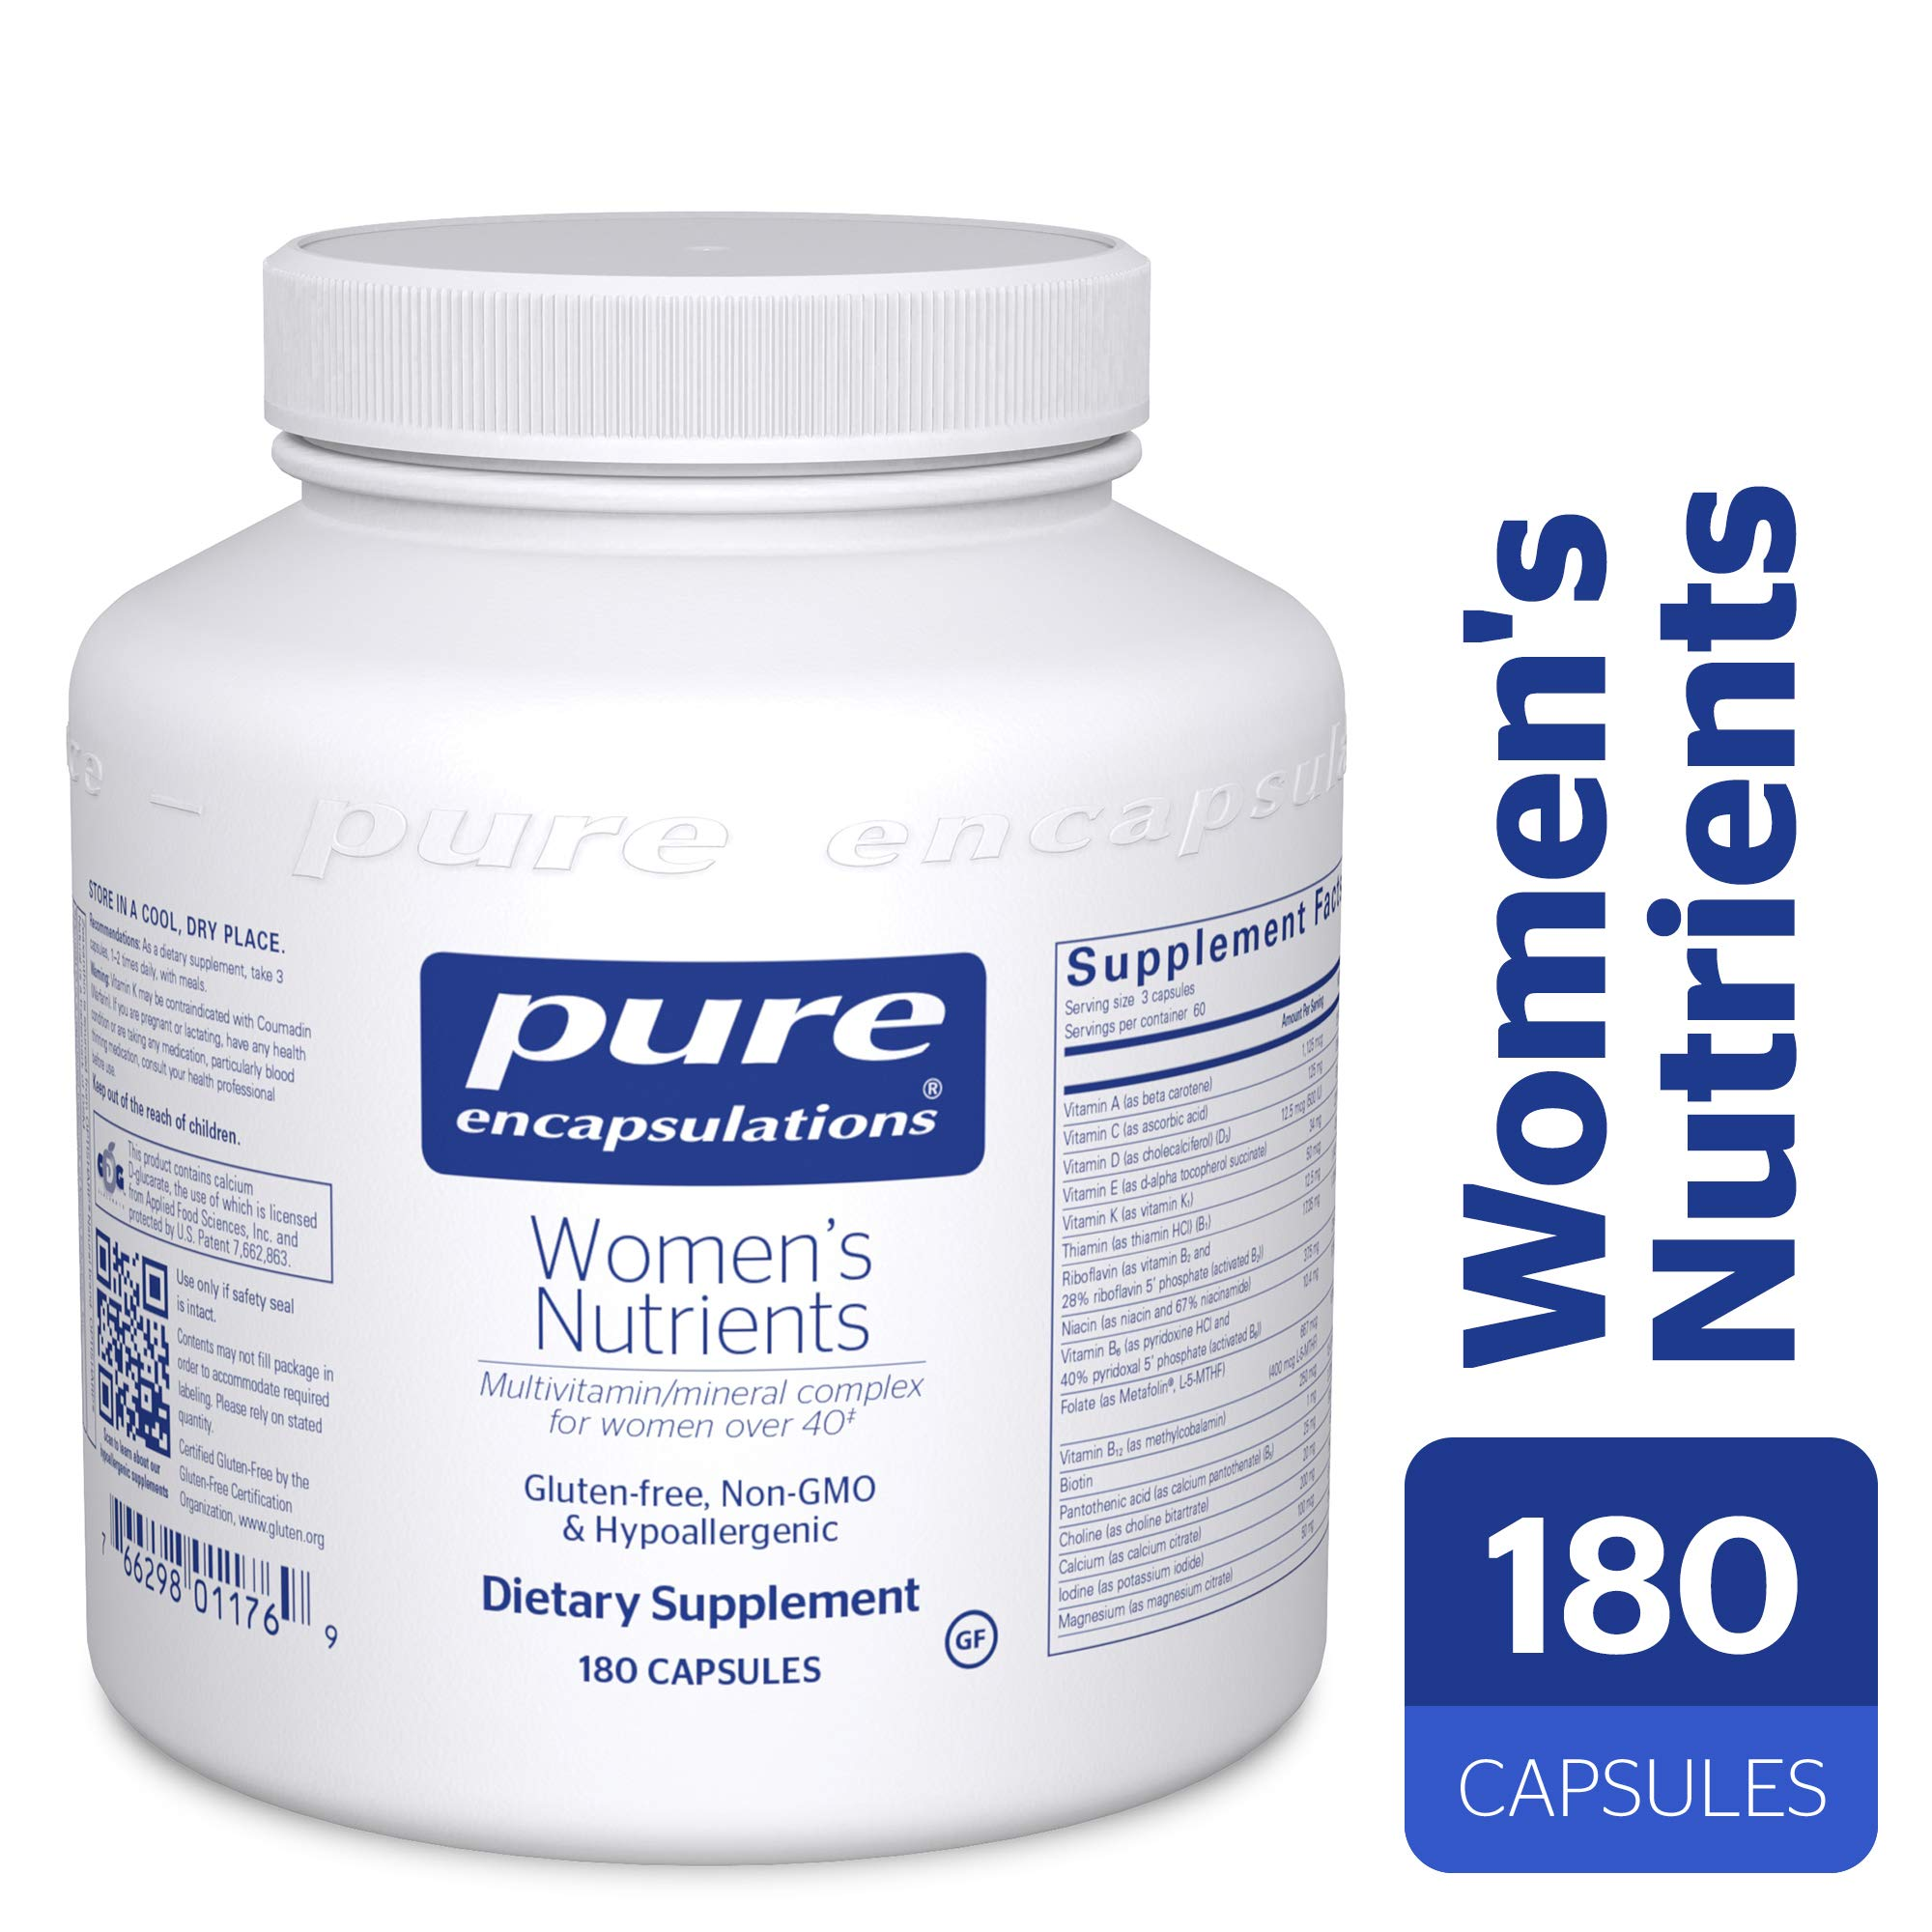 Pure Encapsulations - Women's Nutrients - Hypoallergenic Multivitamin/Mineral Complex for Women Over 40*- 180 Capsules by Pure Encapsulations